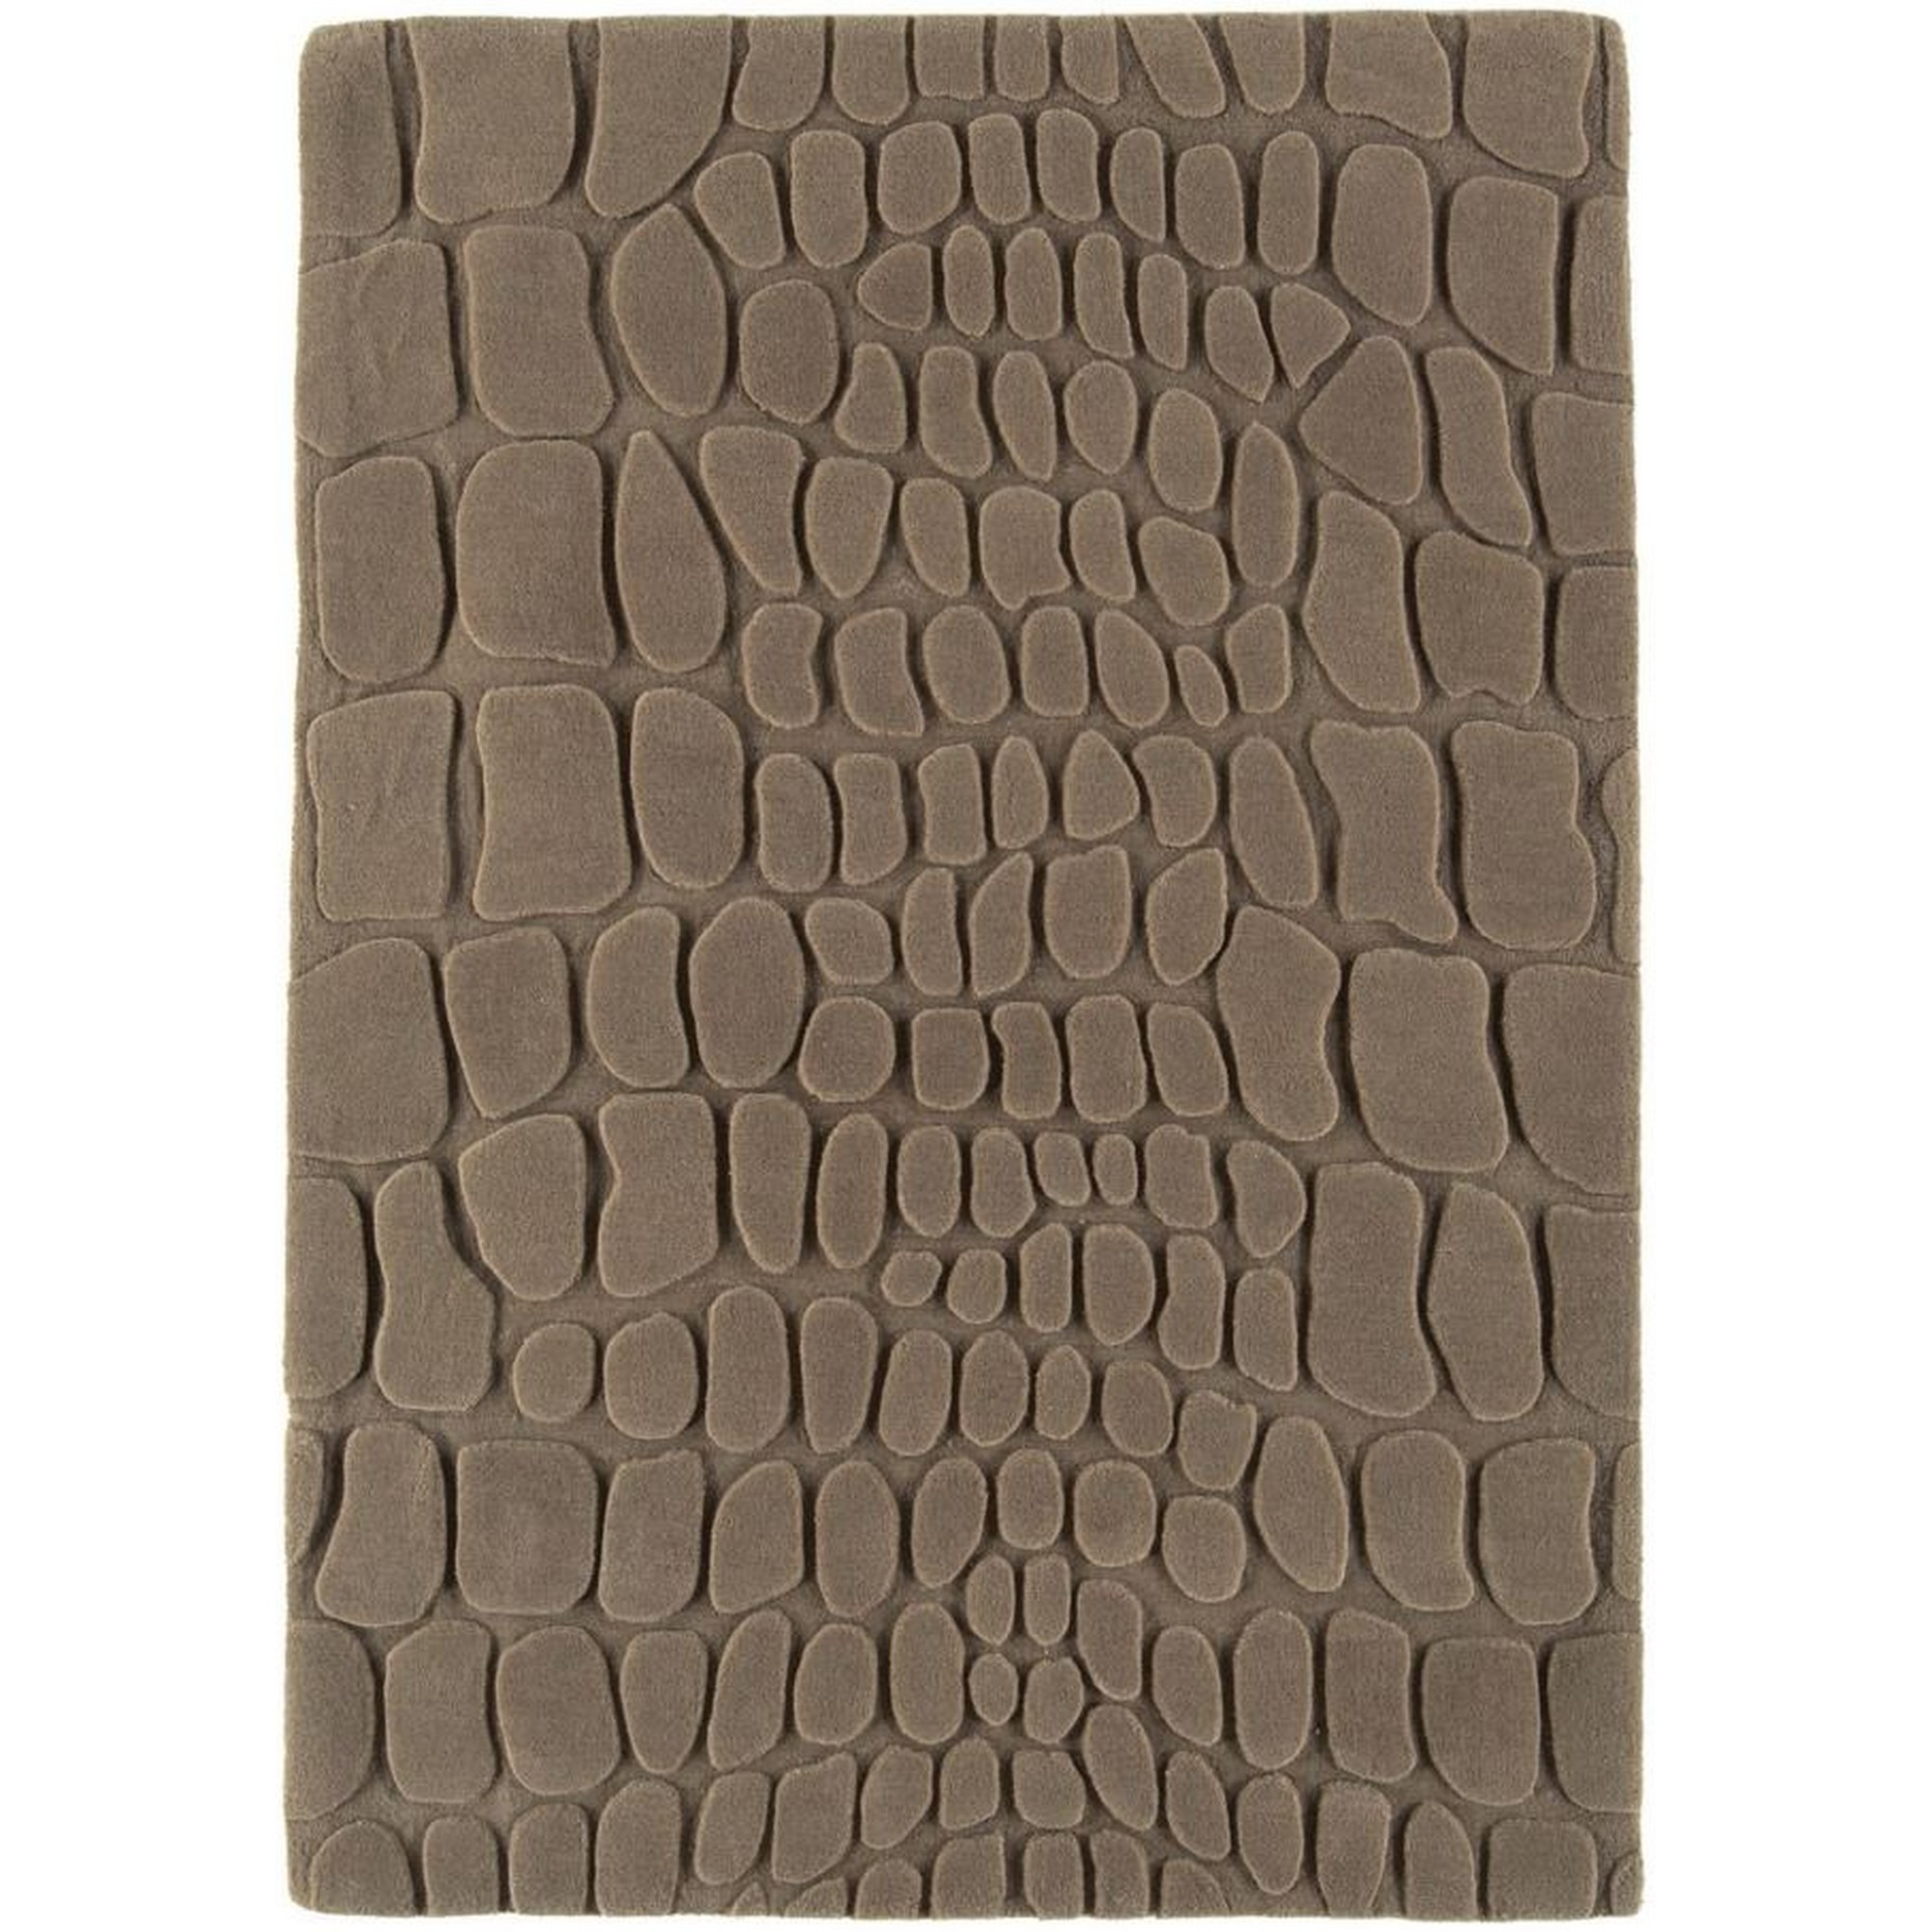 Croc Wool Rugs in Taupe